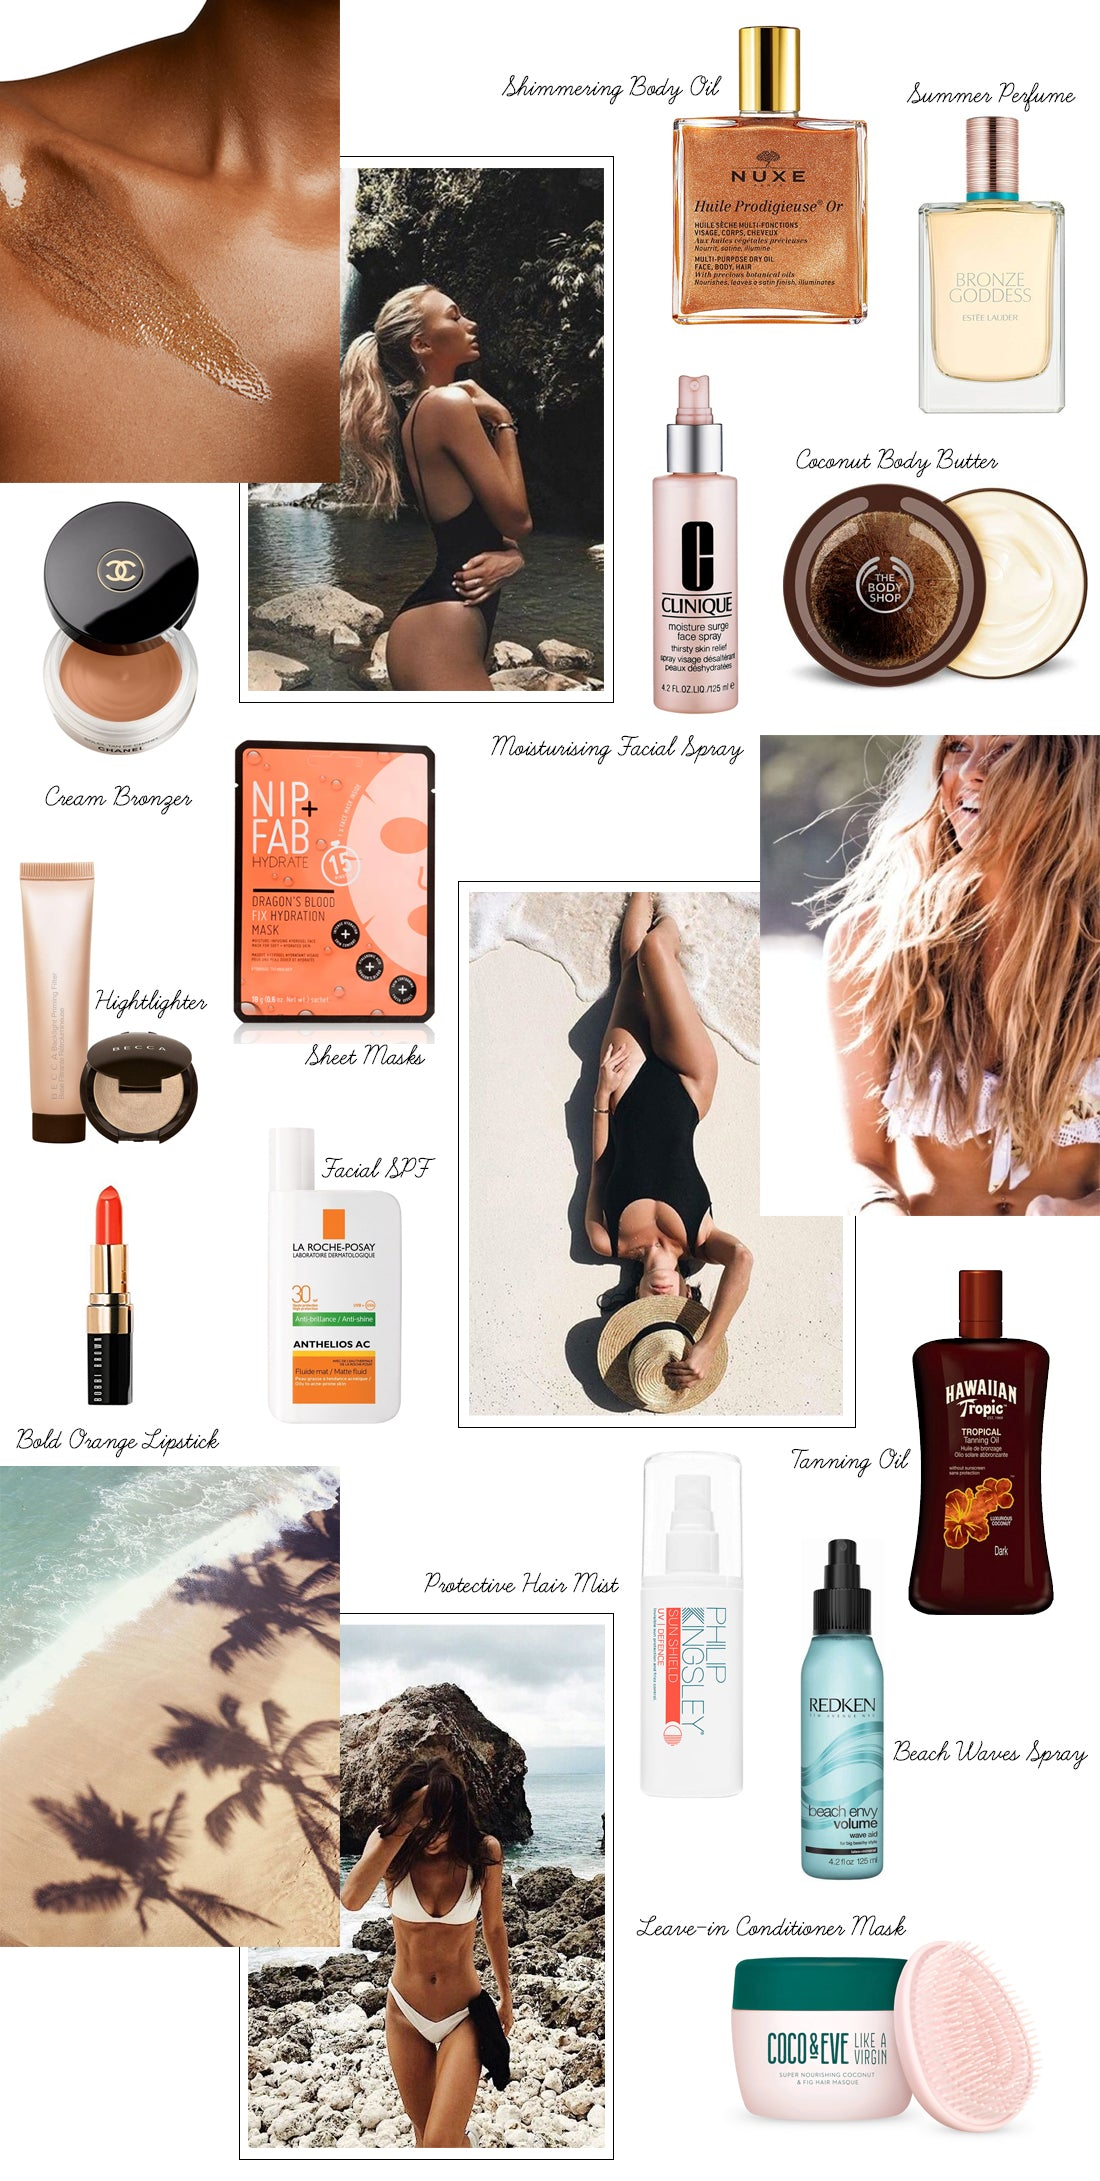 f9106a665af067 Limiting ourselves to only spending money on our top 13 summer essentials